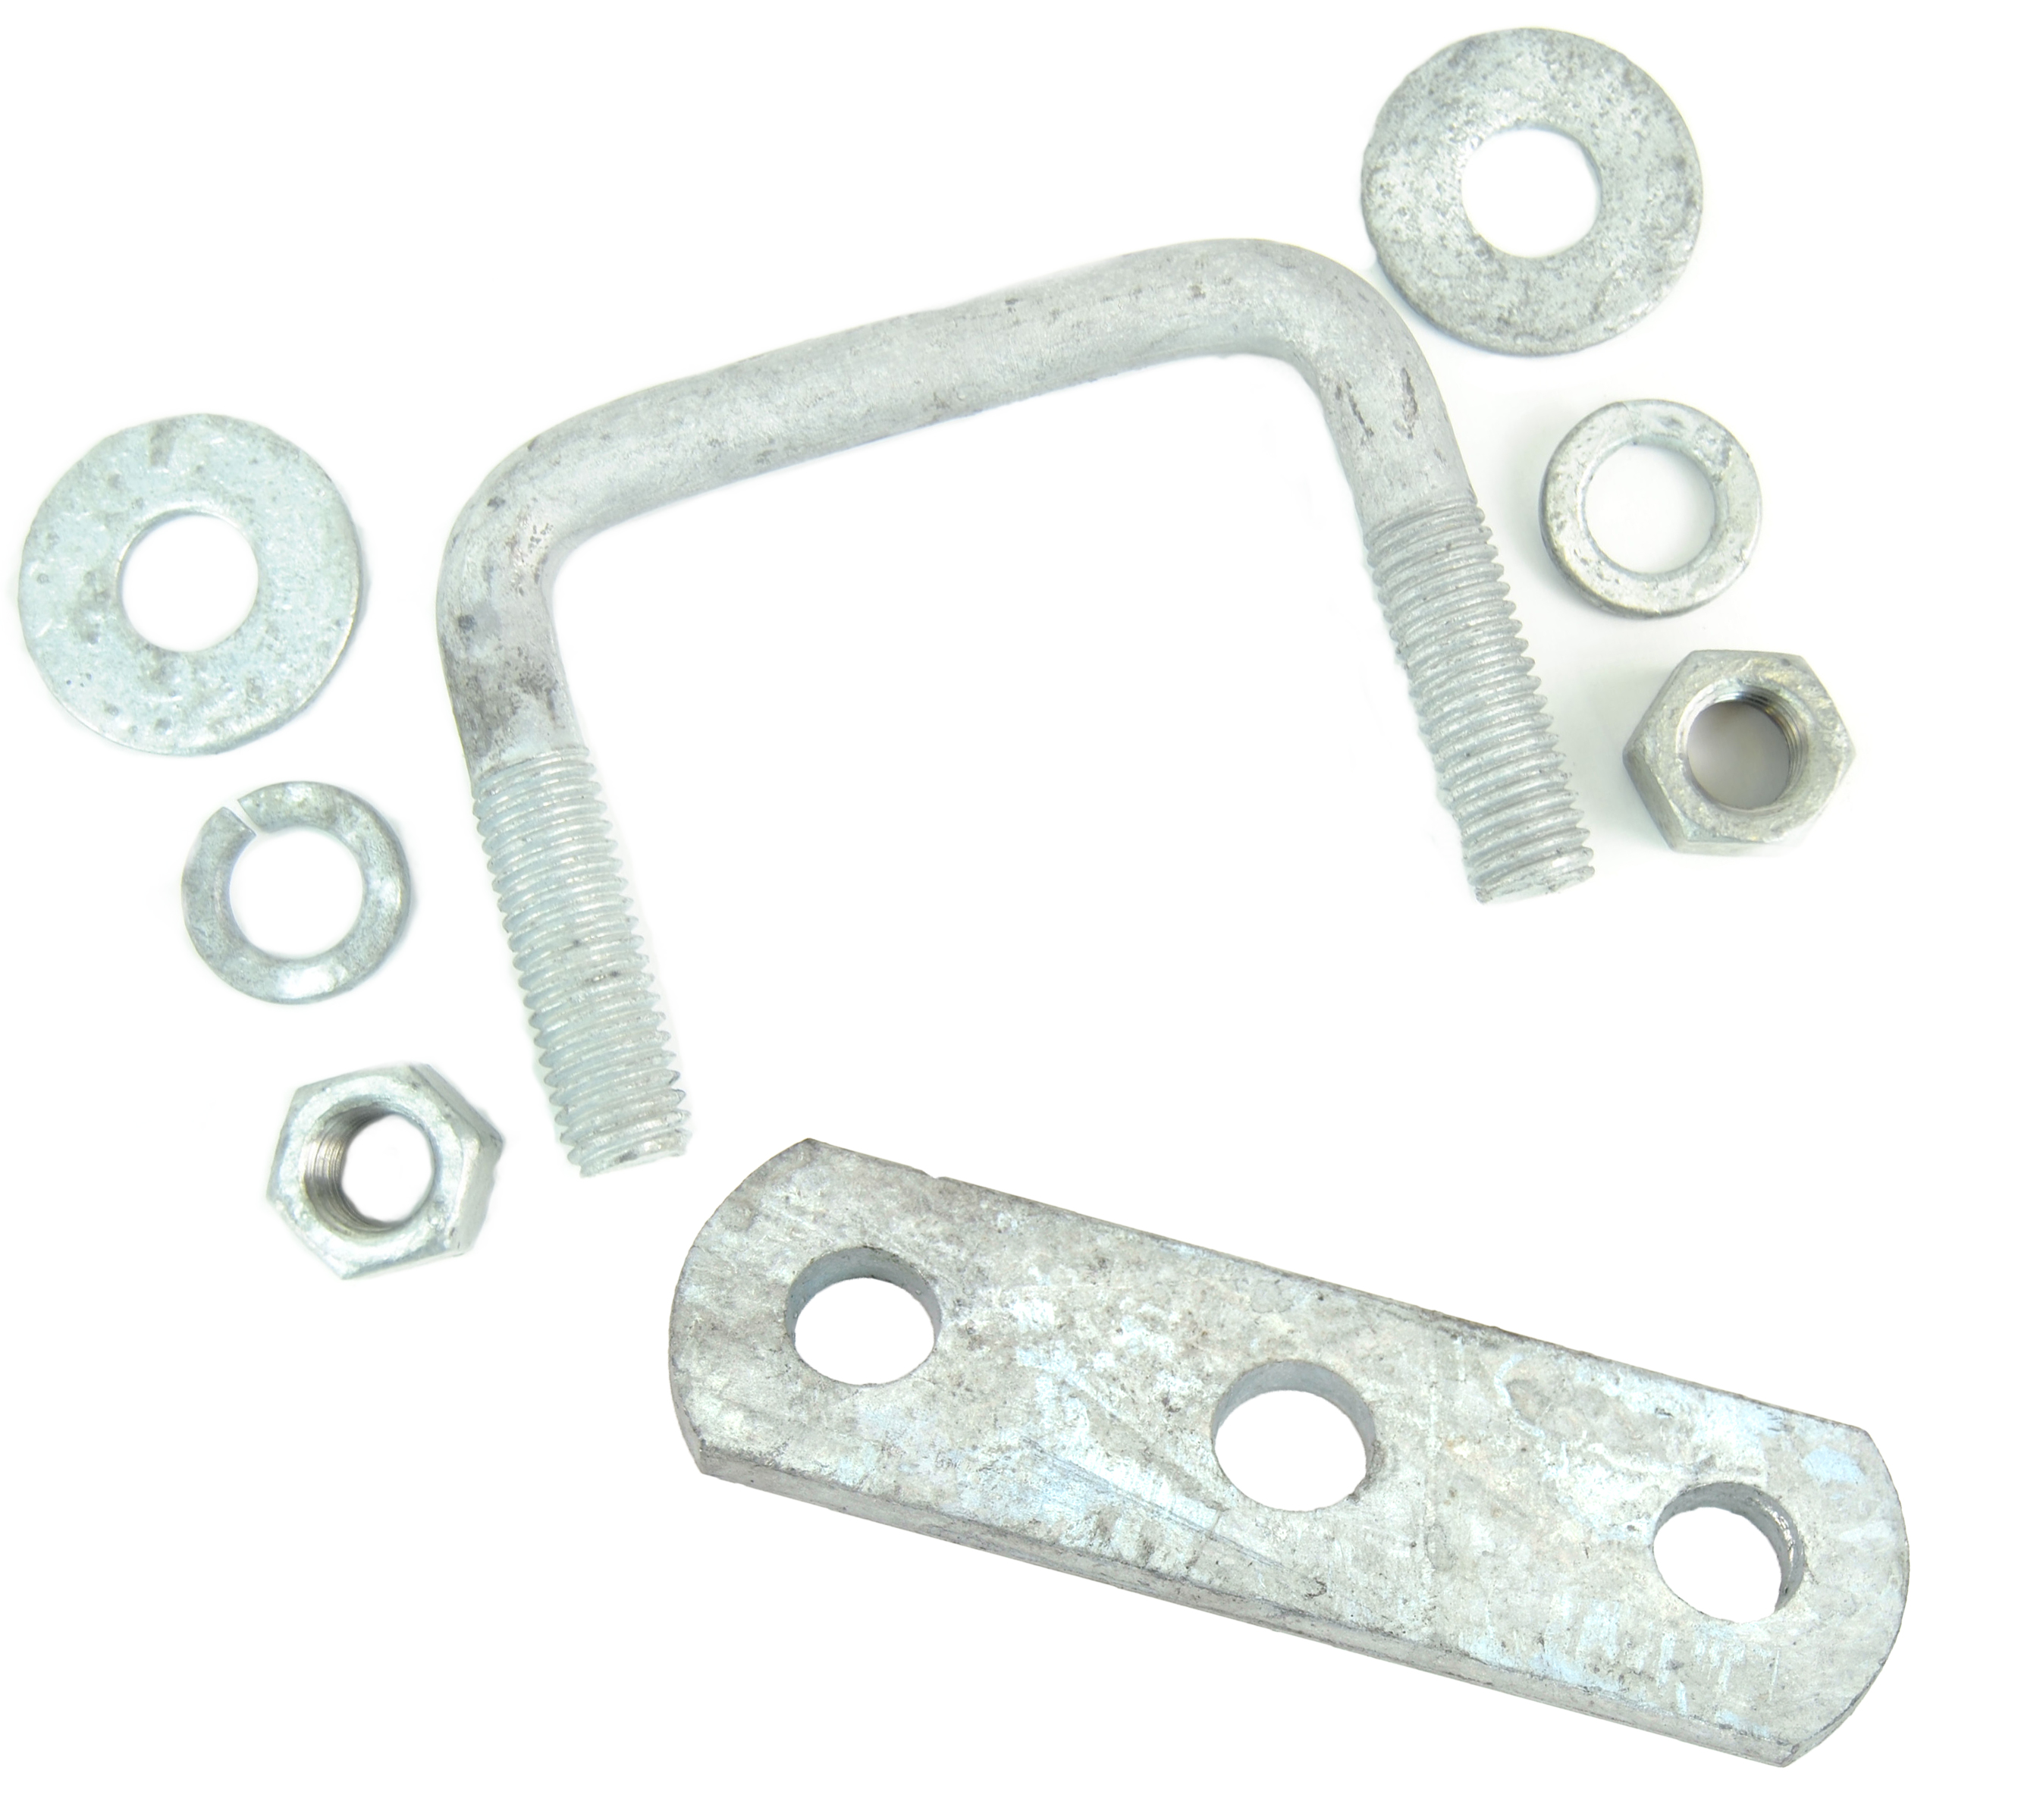 Trailer Mounting Hardware